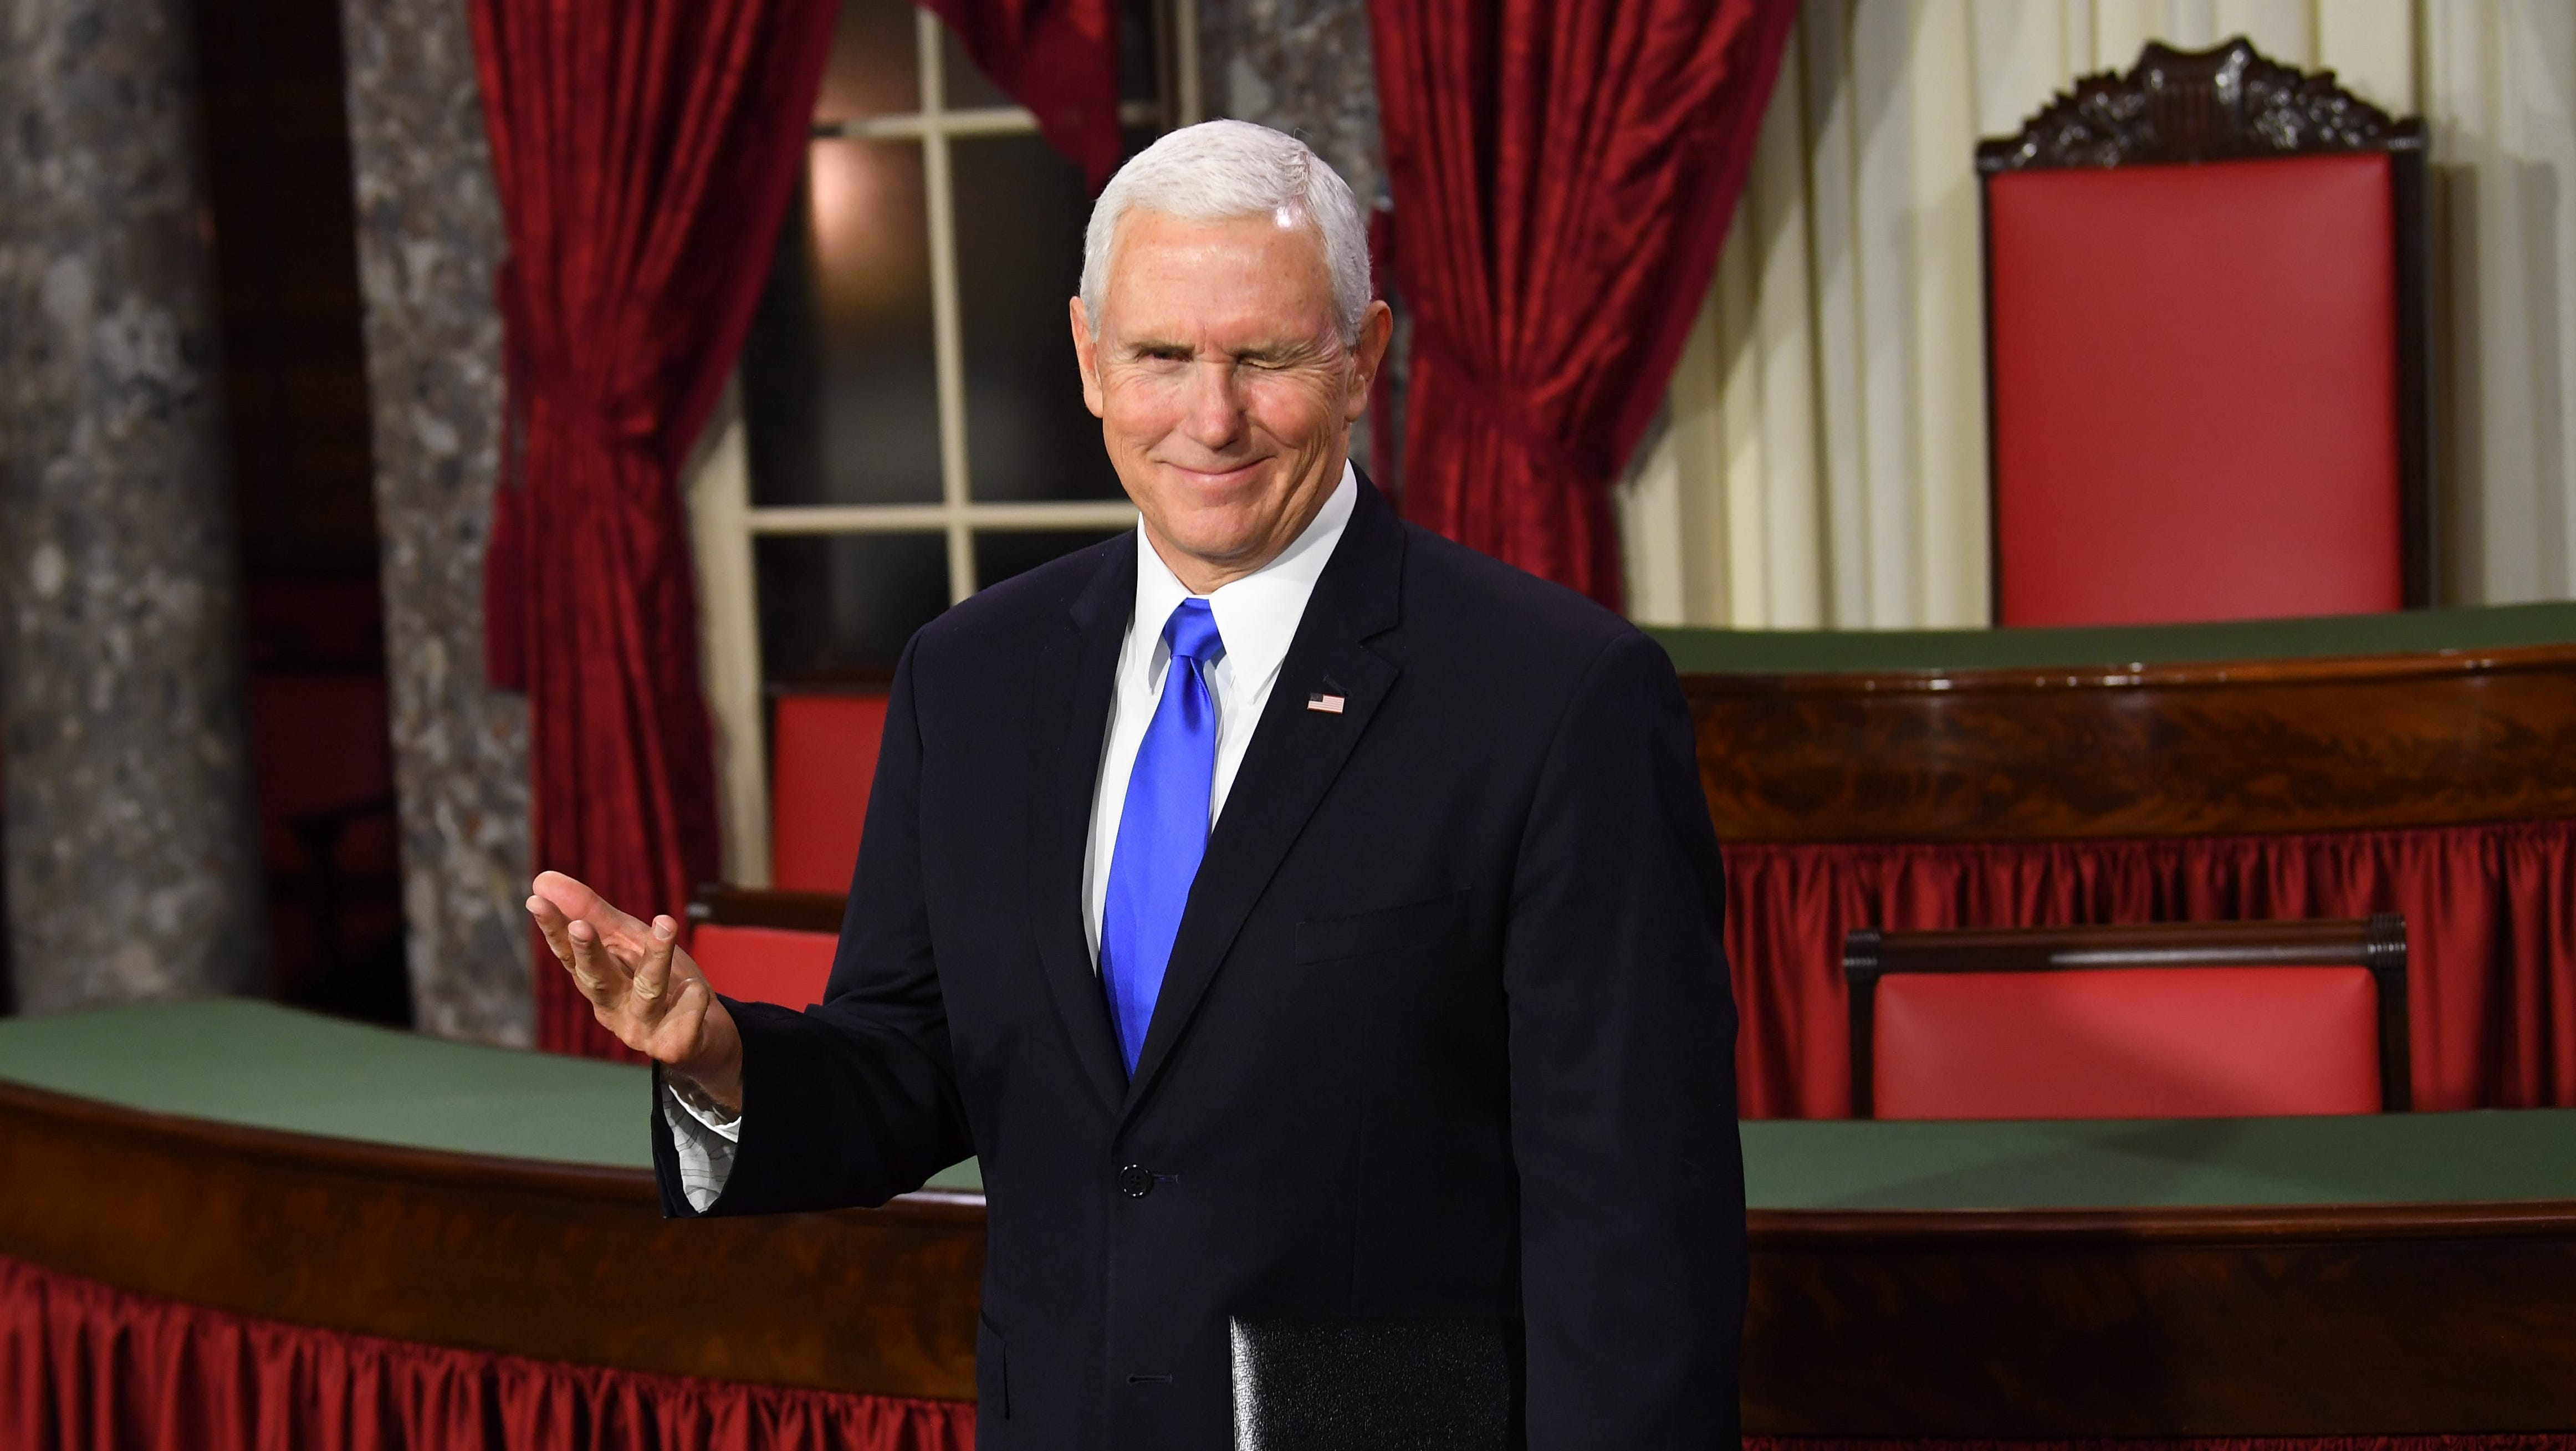 Vice President Mike Pence winks as he officiates ceremonial swearing-ins of Senators in the Old Senate Chambers at the U.S. Capitol on Jan. 3, 2019.